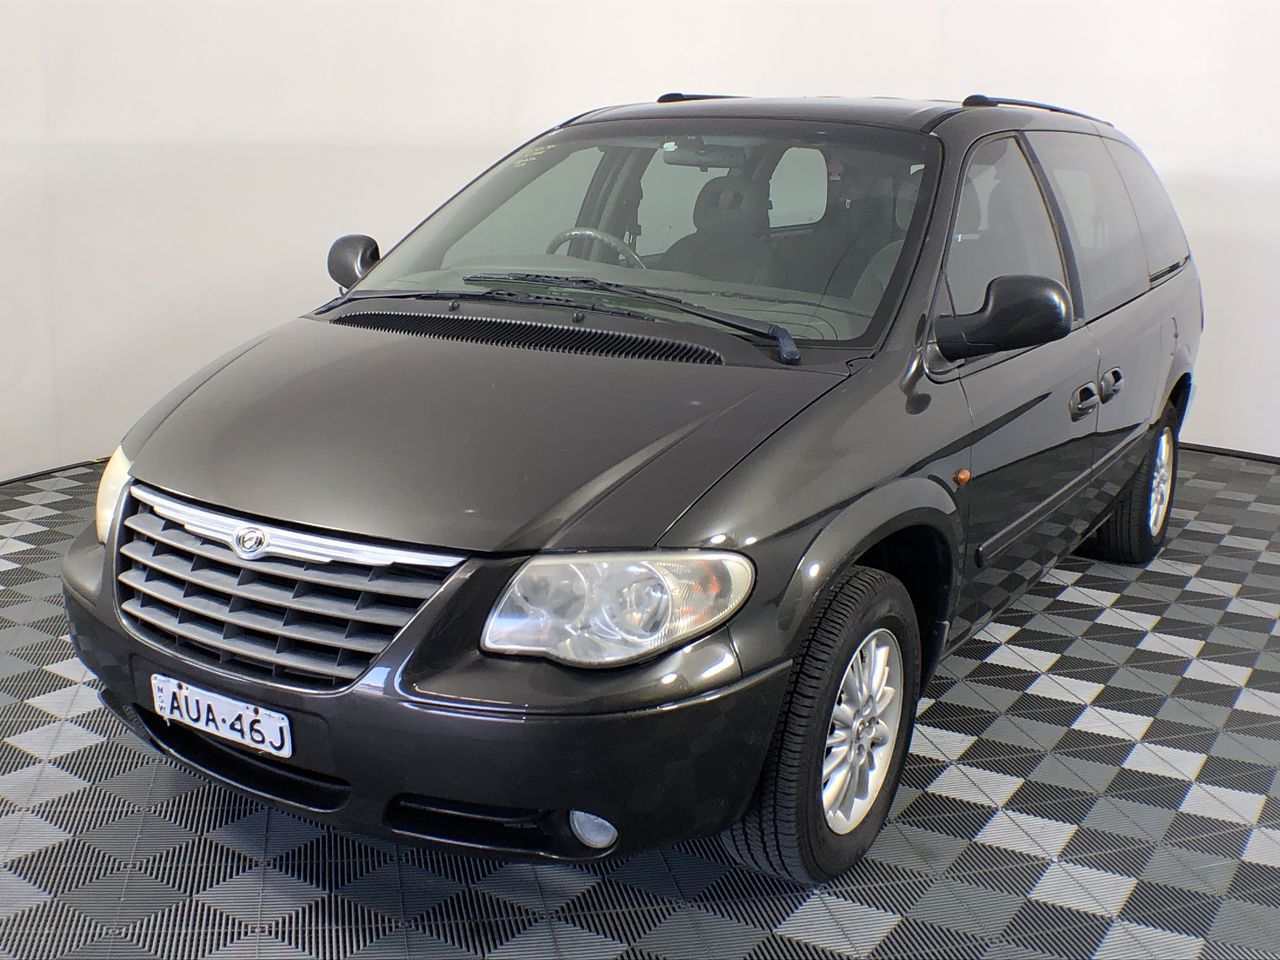 2005 Chrysler Grand Voyager LX VISION RG Automatic 7 Seat People Mover